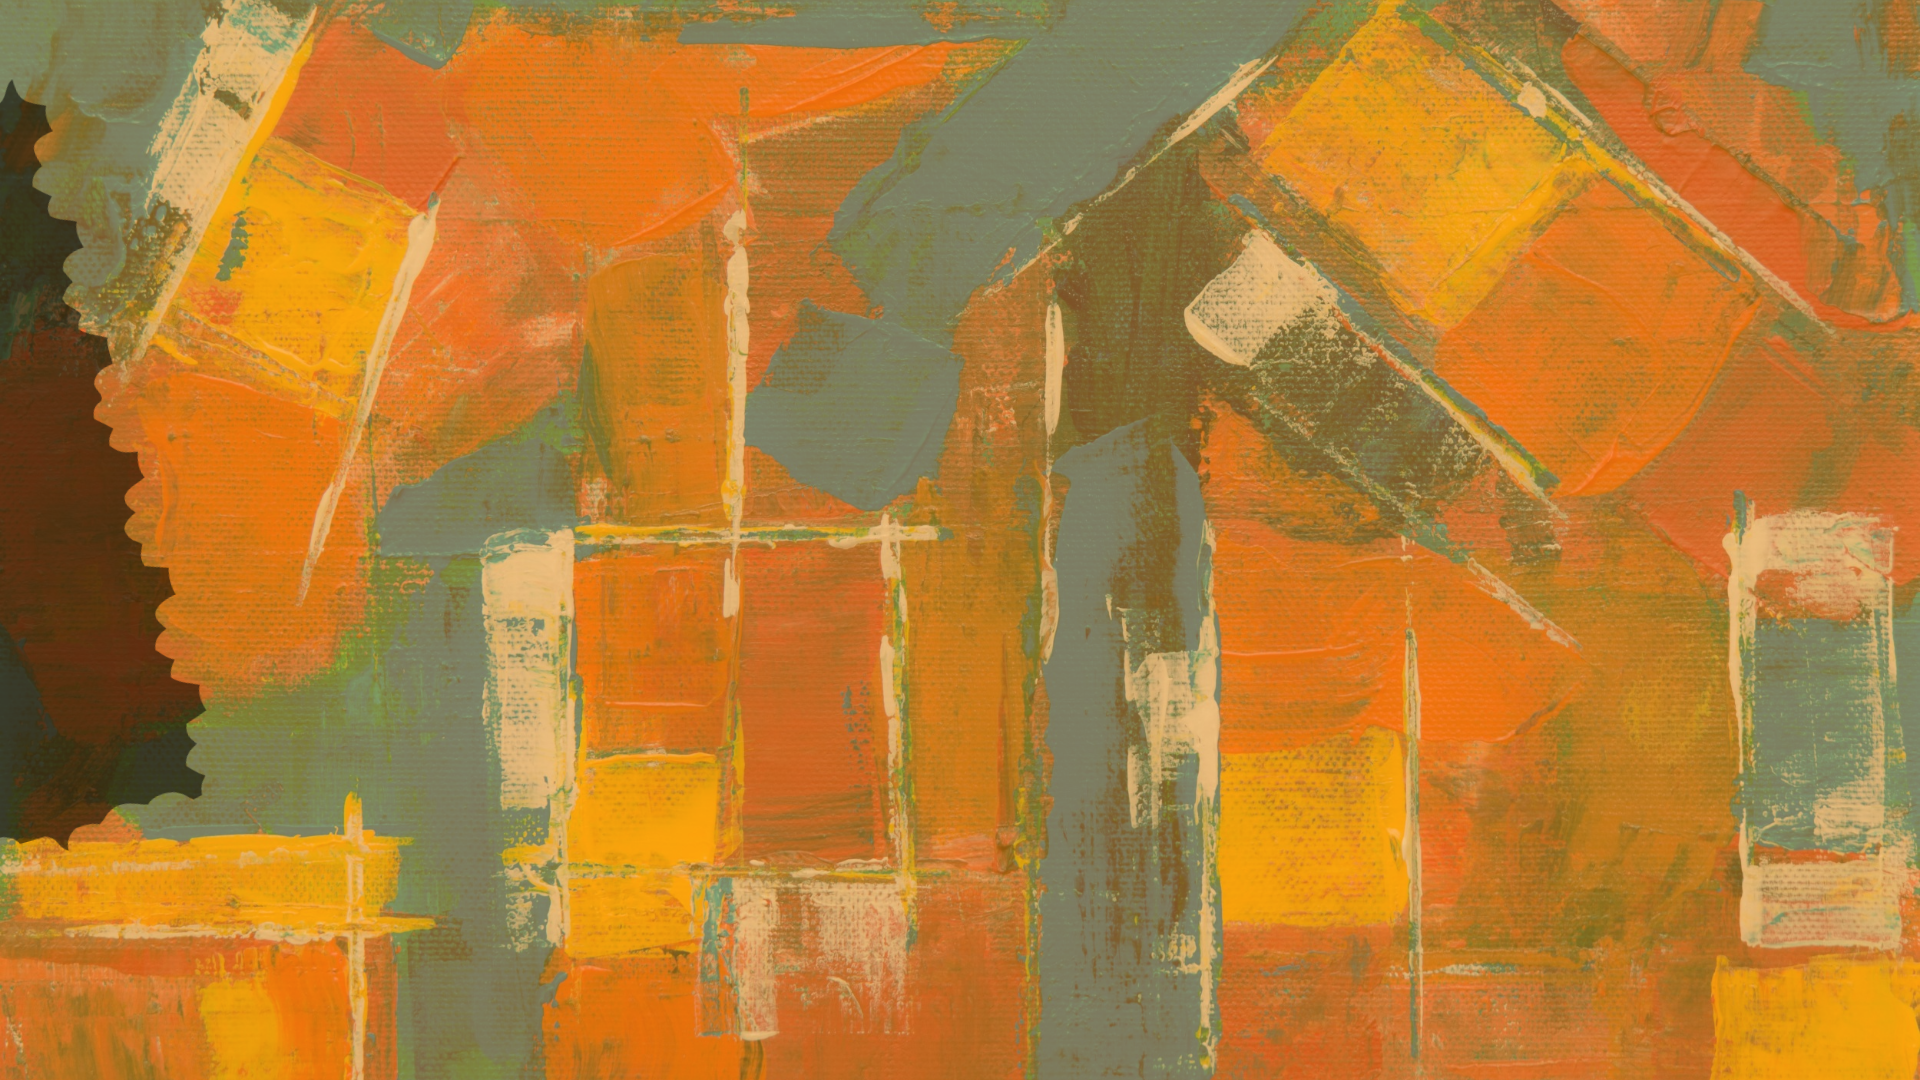 Frames, Wall, Border, Color, Vibrant, Rough, Orange, Art, Fancy, Paint, Rectangles, Expressionism, Abstract,  Free Image